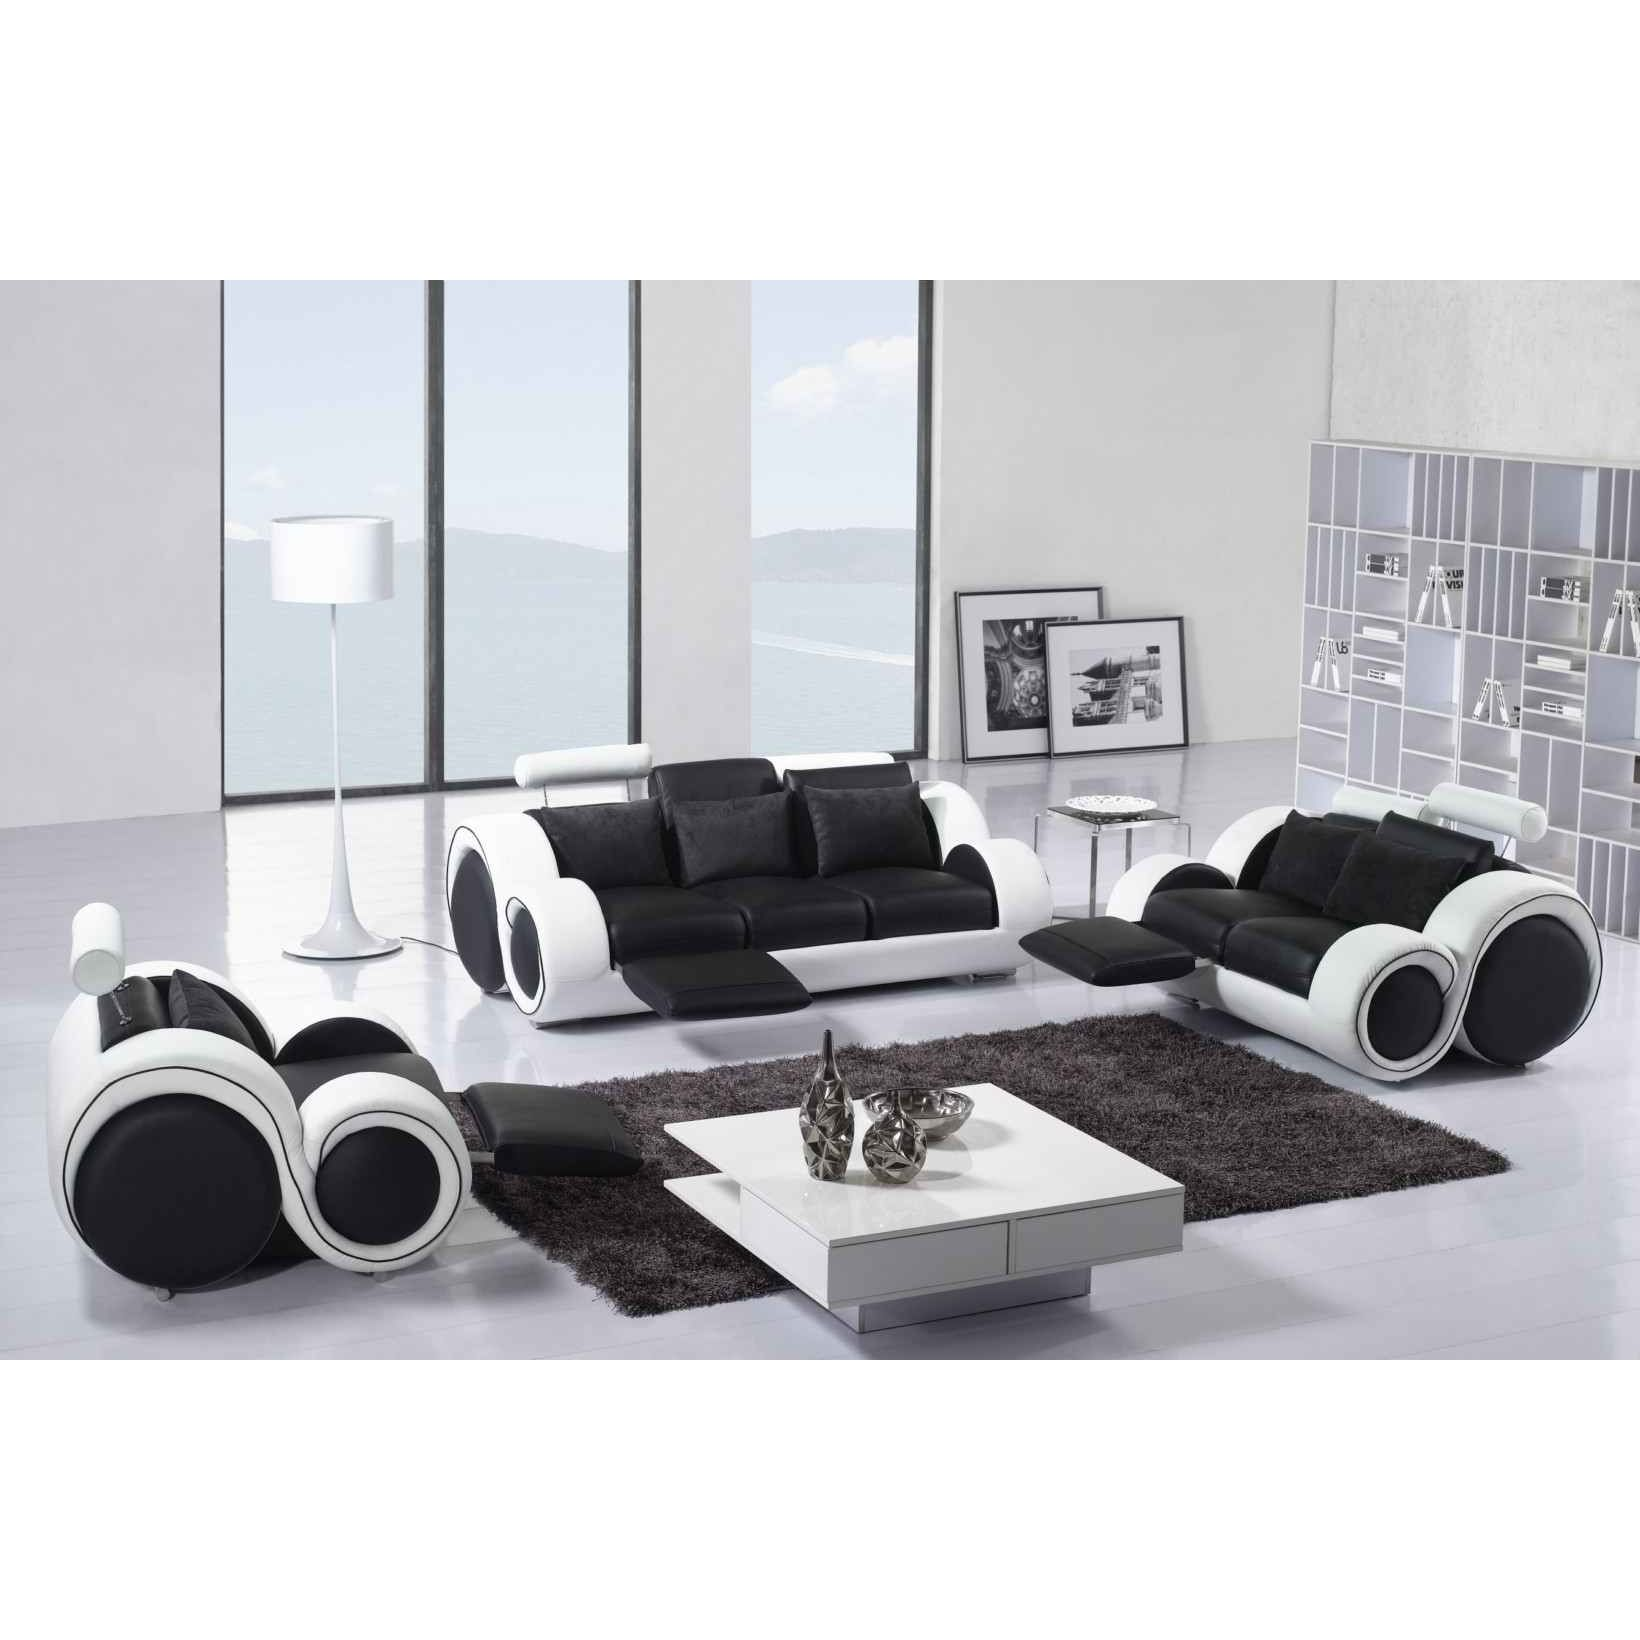 deco in paris ensemble cuir relax oslo 3 1 1 places noir et blanc 4088. Black Bedroom Furniture Sets. Home Design Ideas